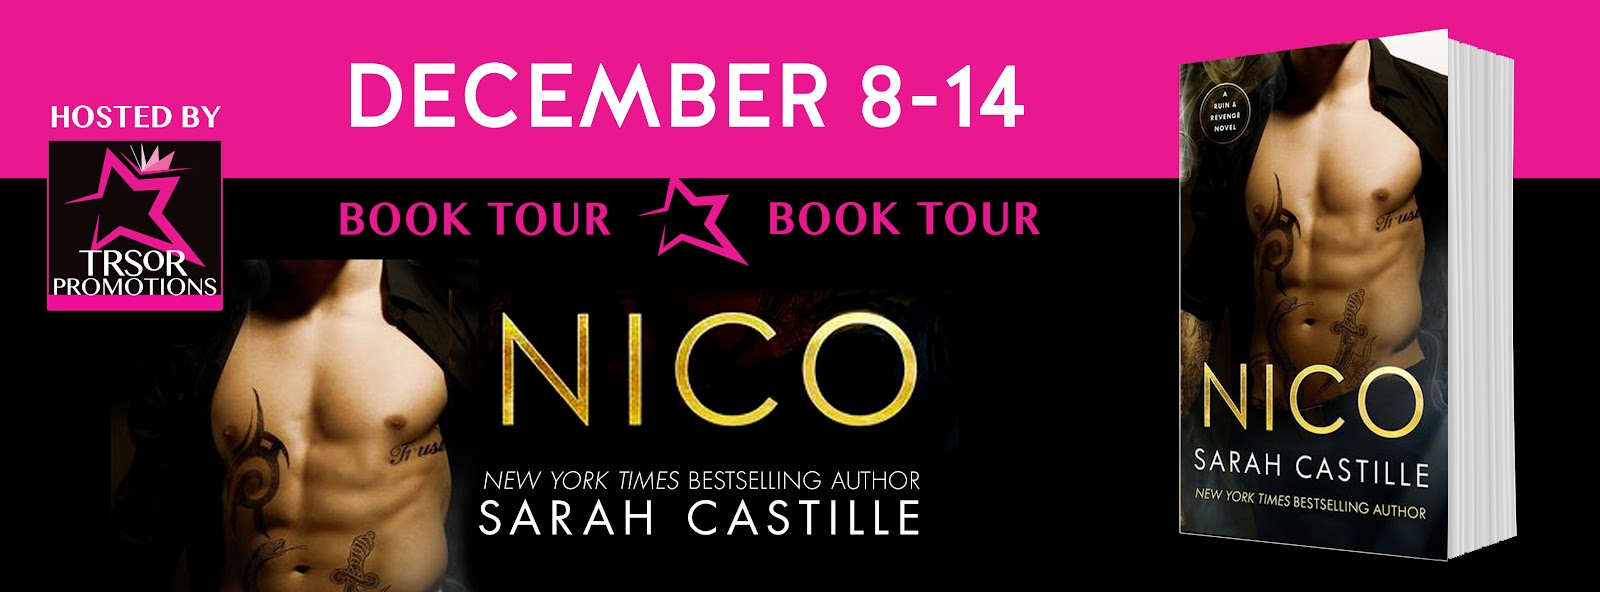 NICO_BOOK_TOUR.jpg